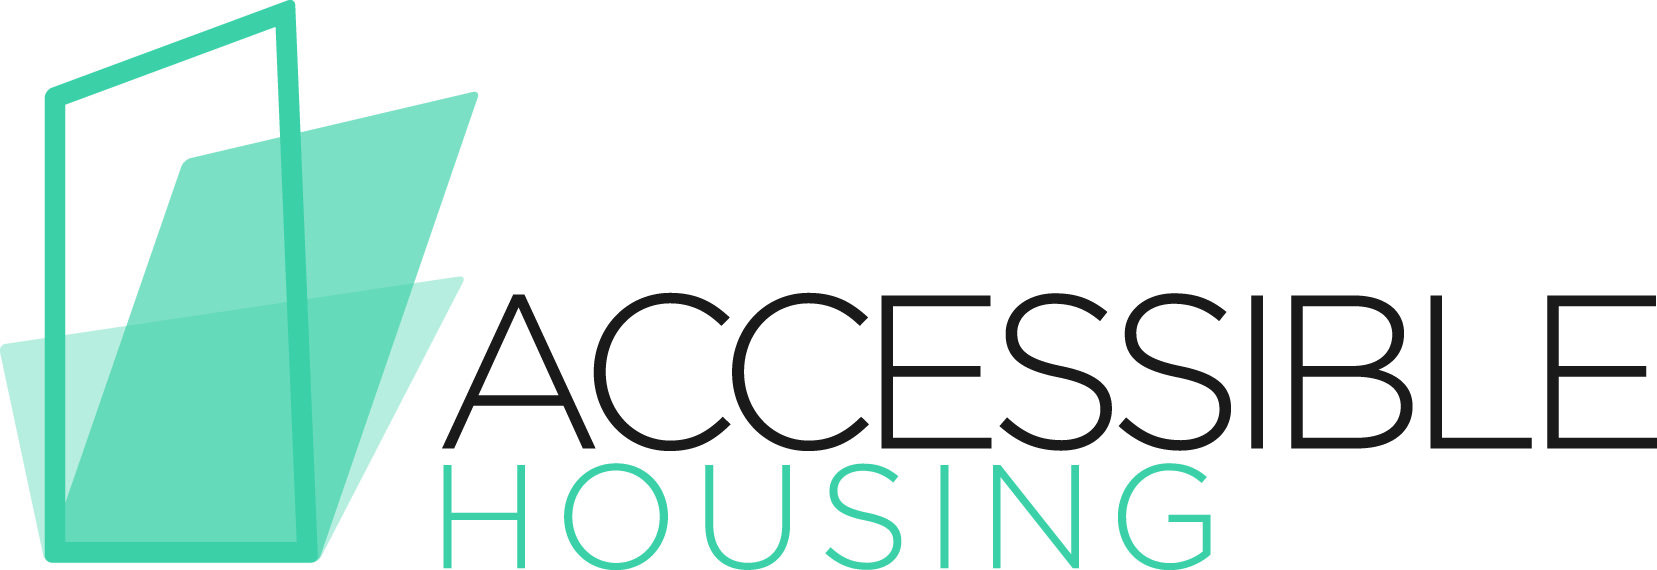 Accessible Housing - New Logo - EPS.jpg